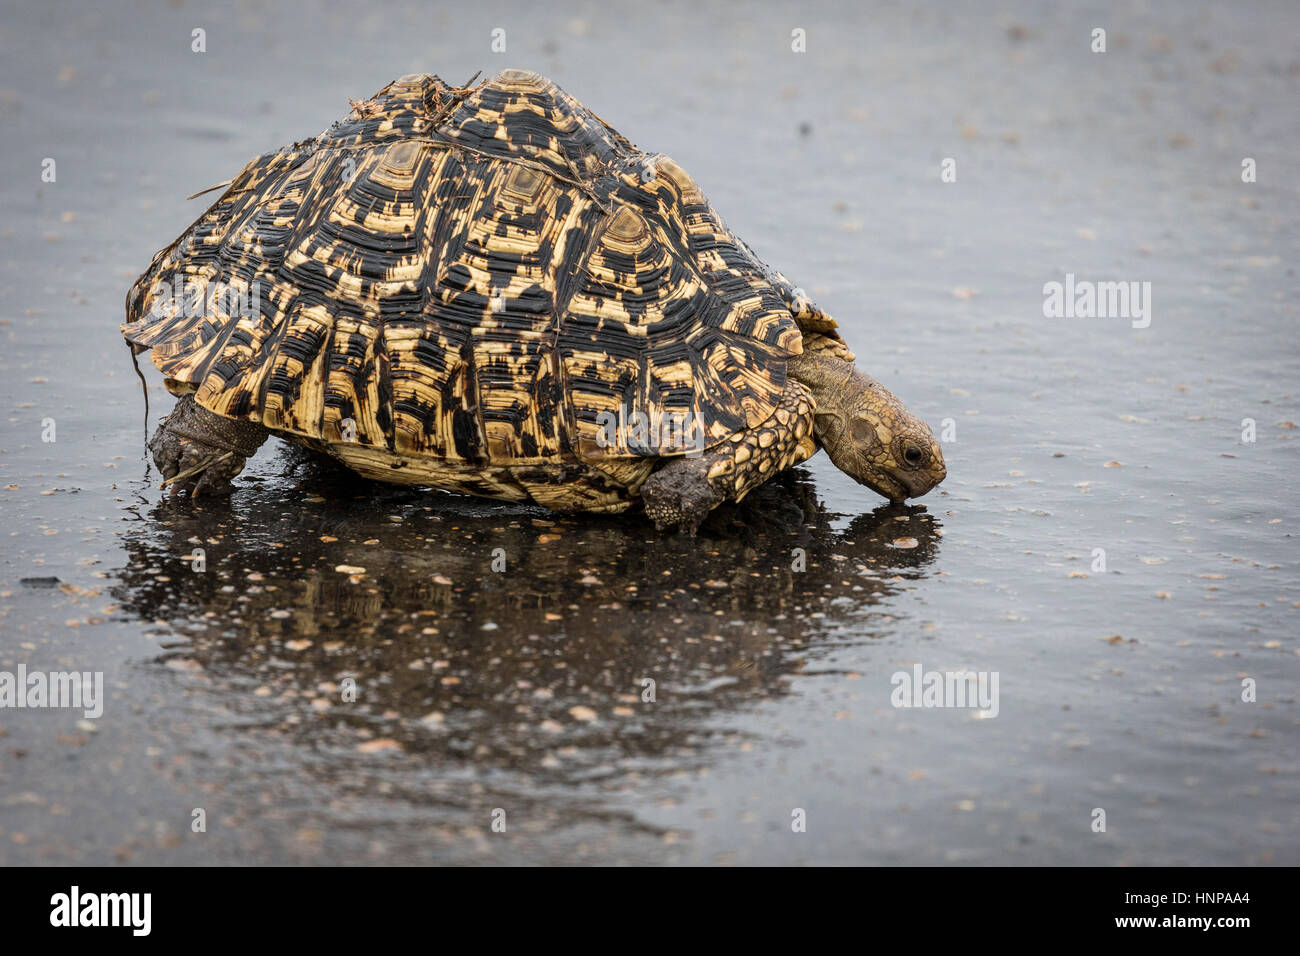 Leopard tortoise (Geochelone pardalis) drinking in water, Kruger National Park, South Africa - Stock Image